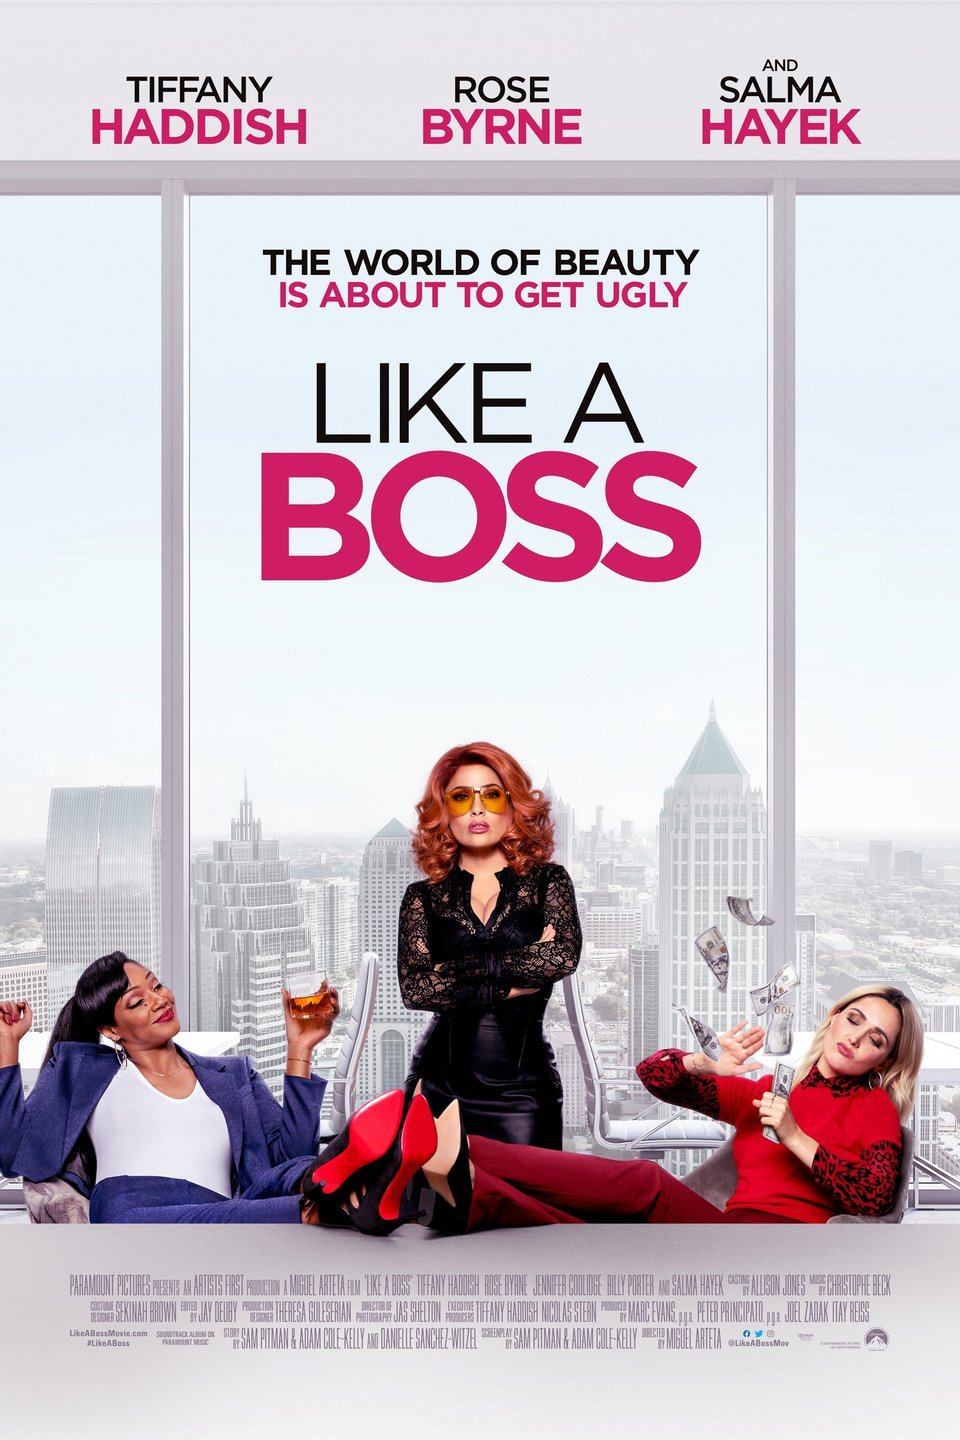 Like A Boss 2020 Movie Free Online Salma Hayek, Rose Byrne, Tiffany Haddish